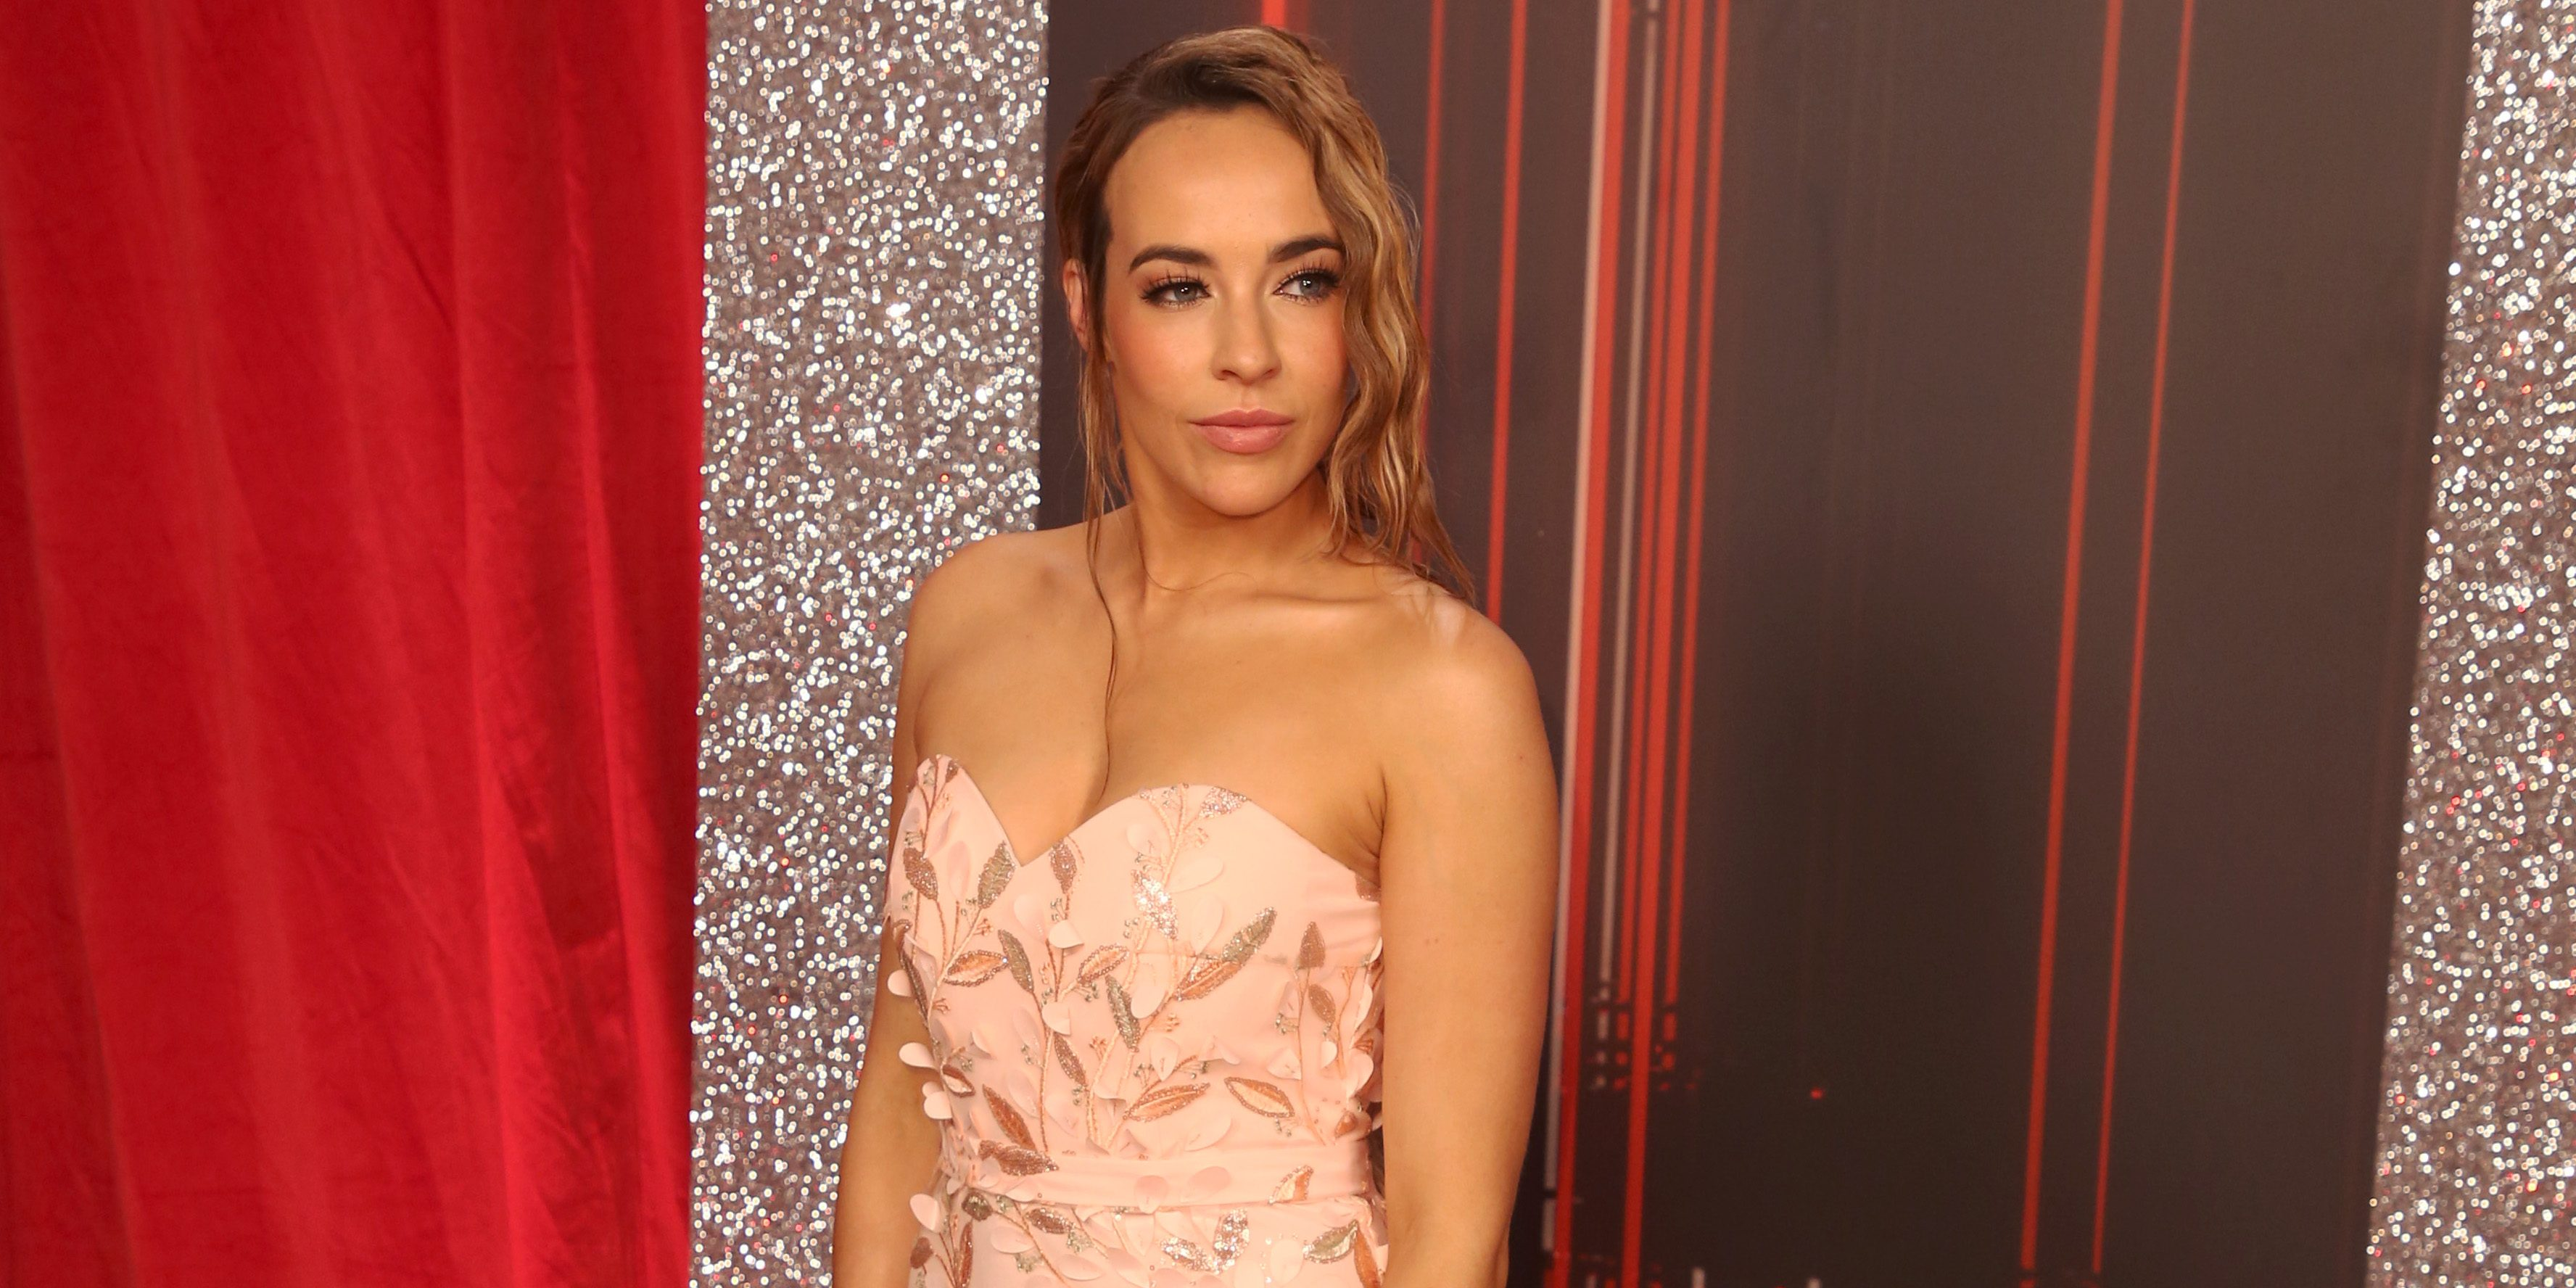 Hollyoaks' Stephanie Davis reveals she has autism in emotional video